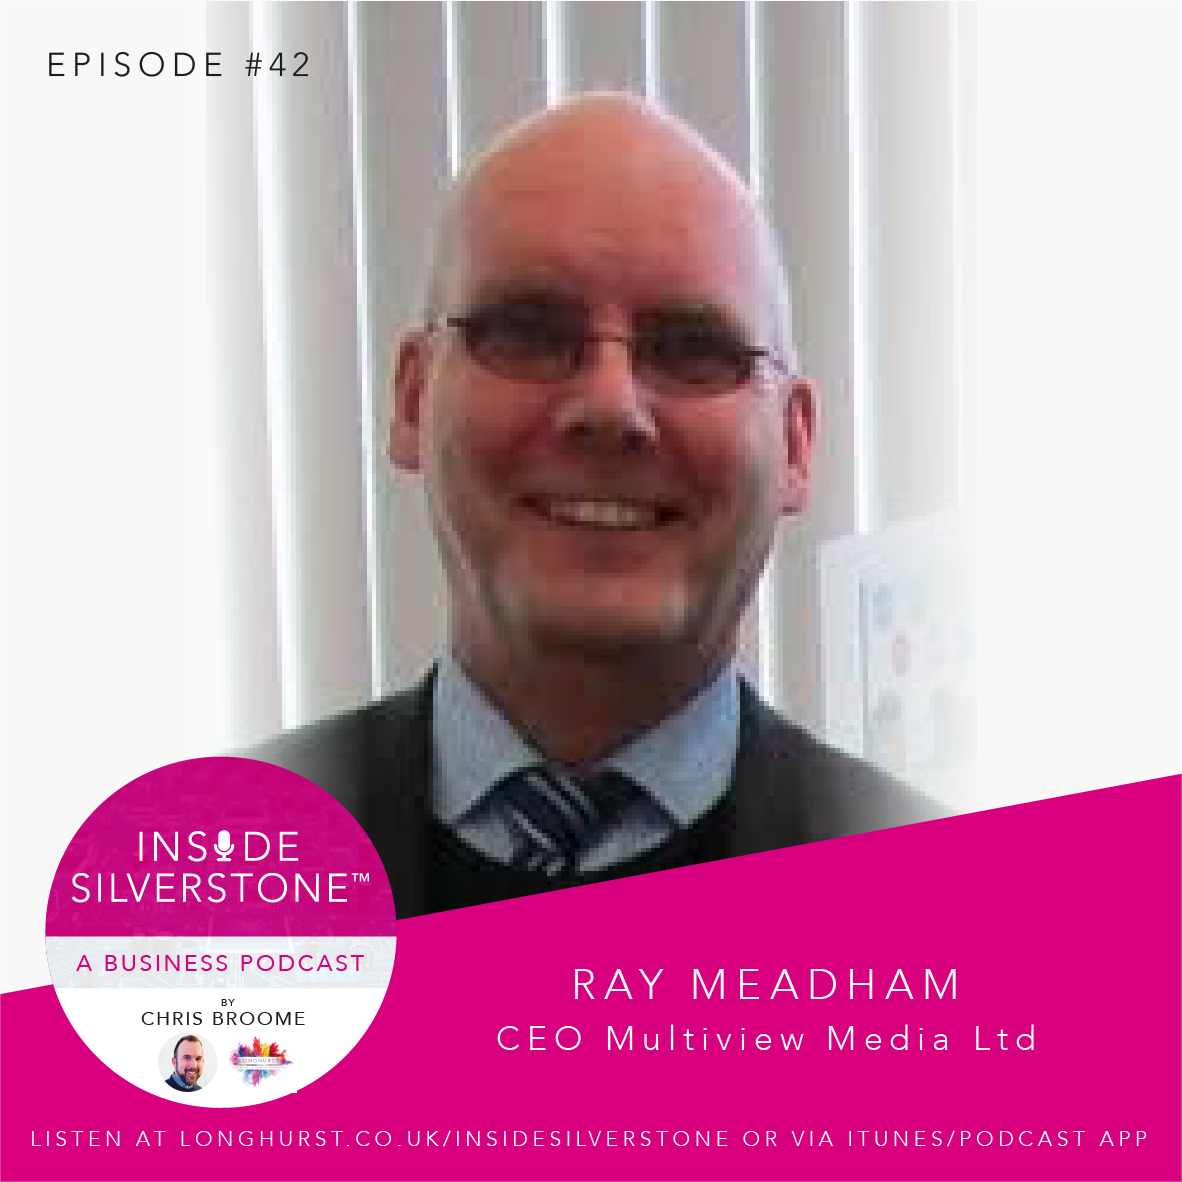 Ray Meadham CEO of Multiview Media